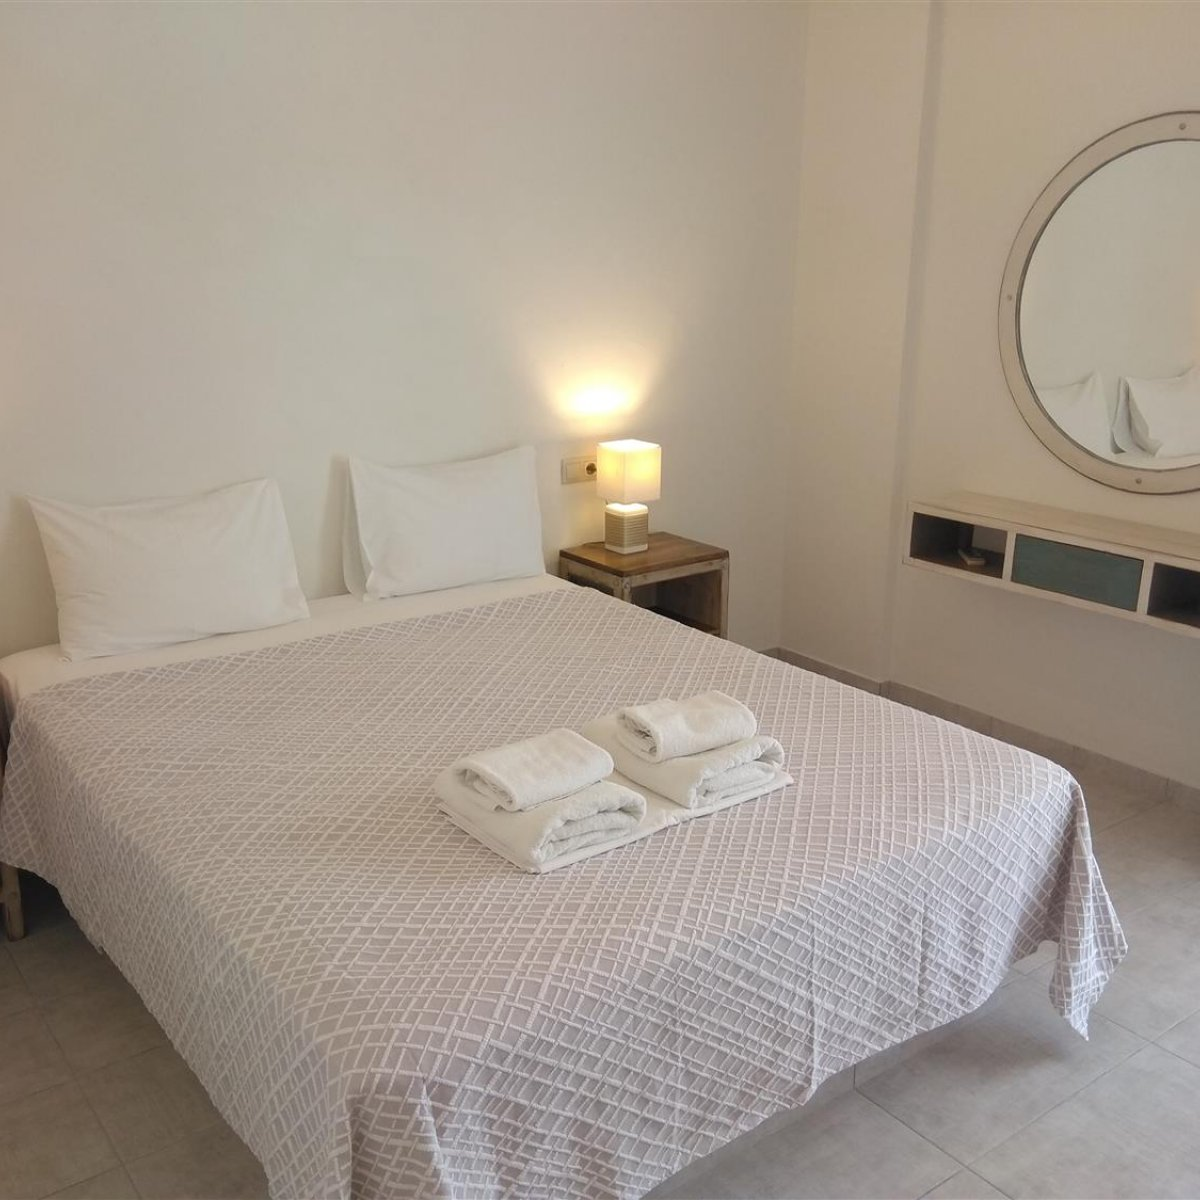 Hotel Sunshine Matala - Standard rooms